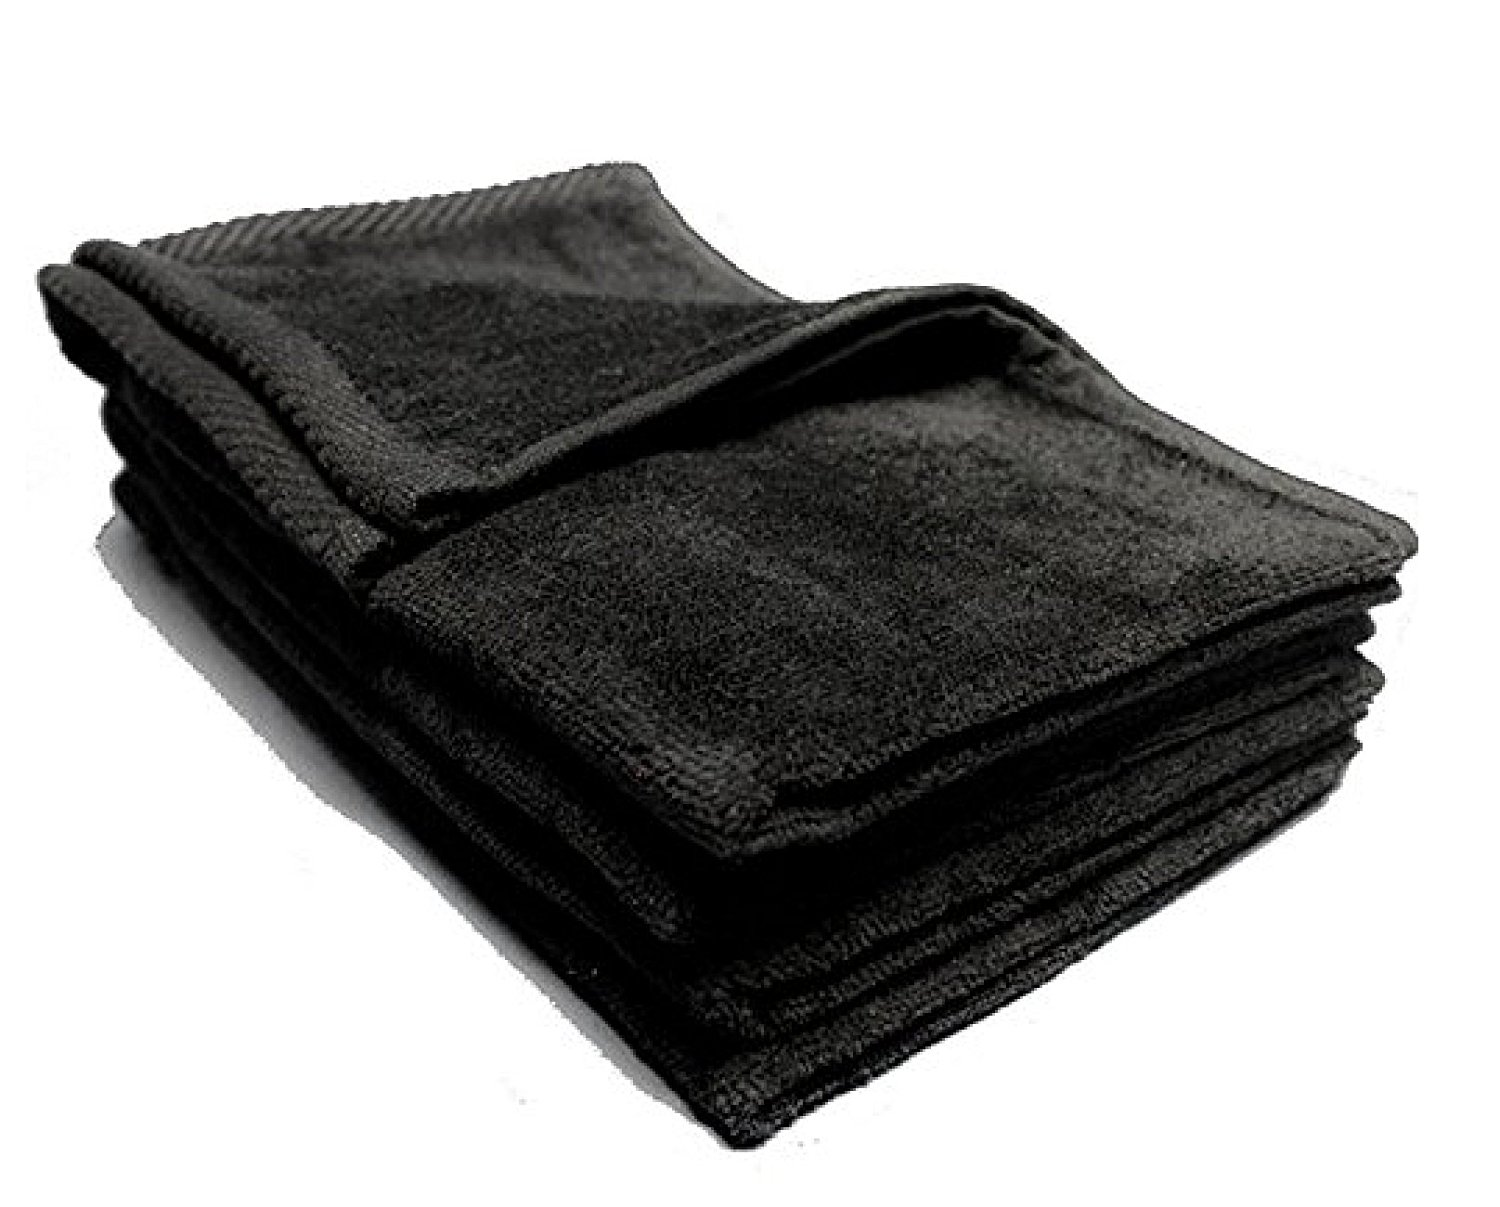 Big Deal! Cotton Terry Towel,BLACK Color,Low Cost Bulk Towels at Wholesale Prices! (24 Count Pack) (24, BLACK)